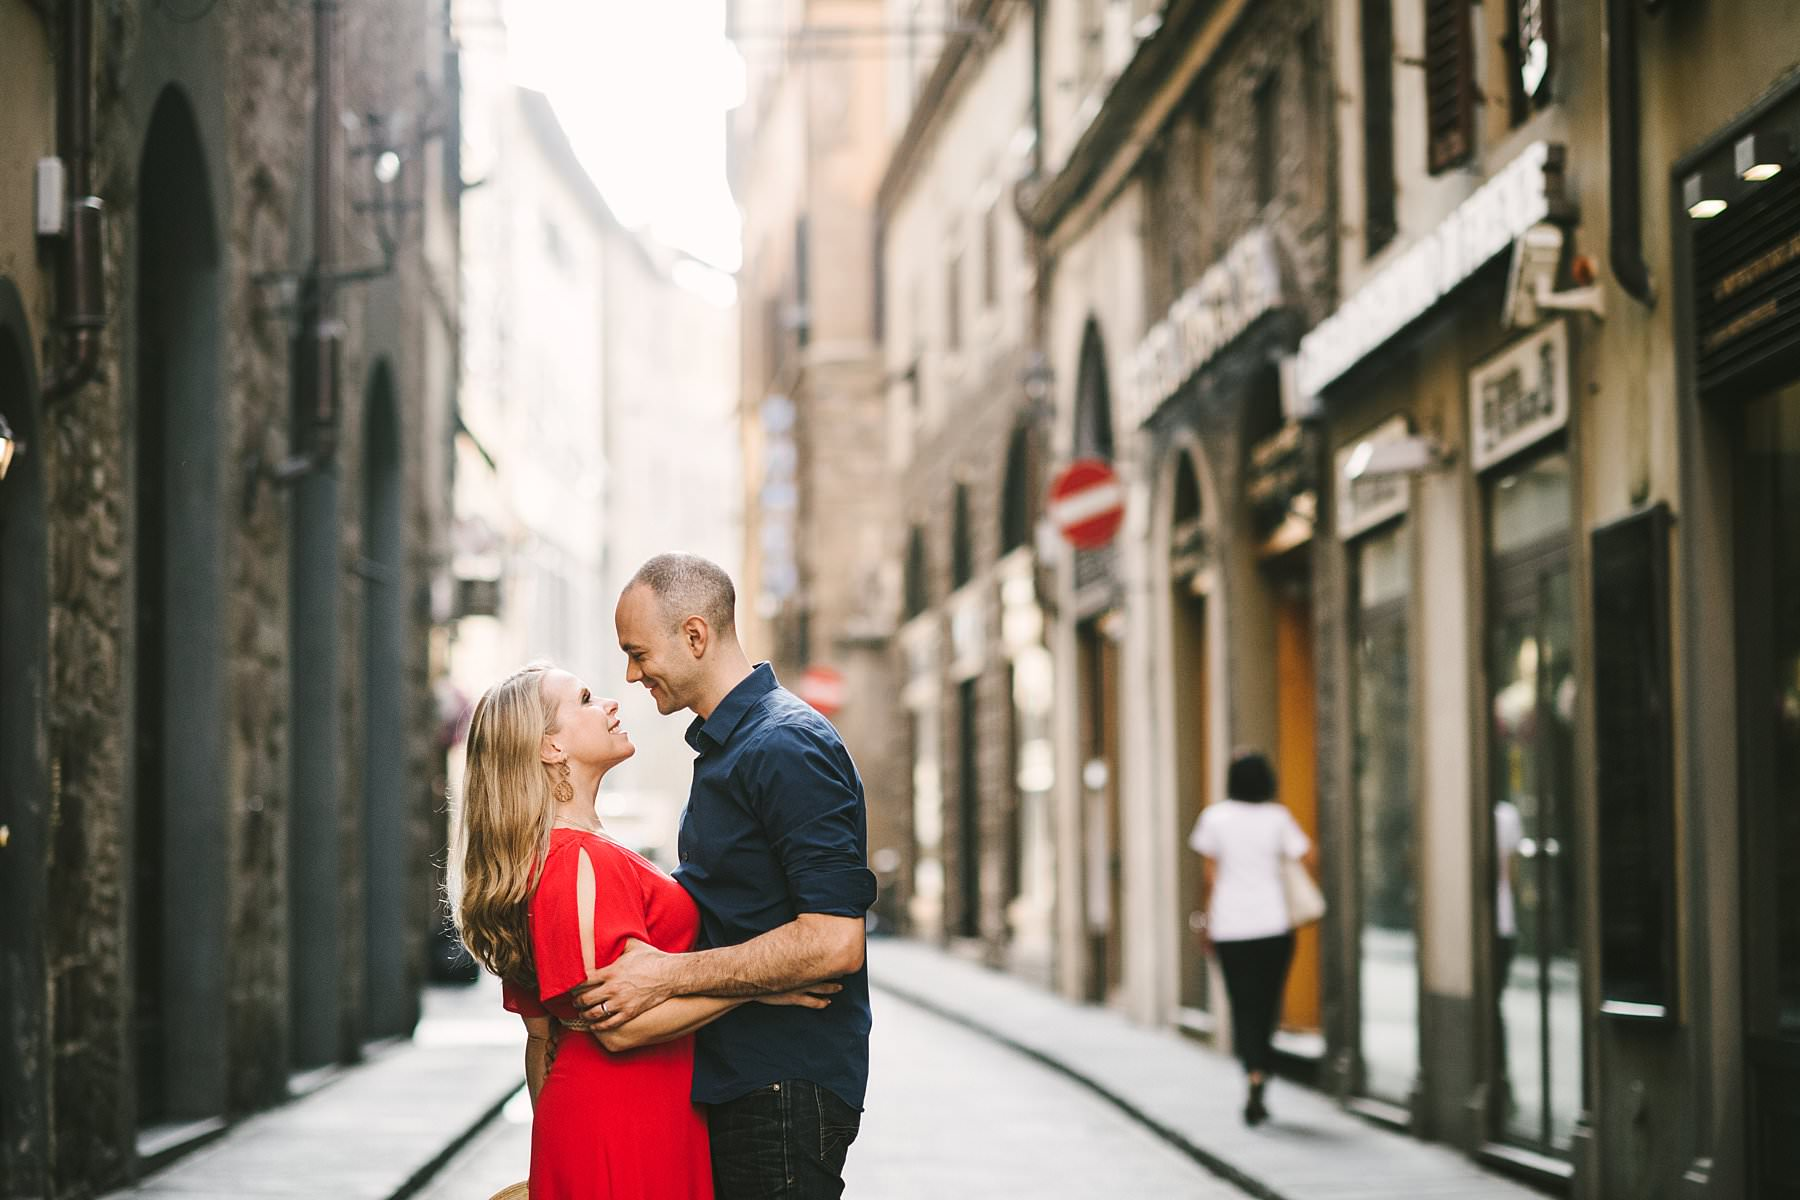 Anniversary photos in Florence: soft as sunrise, red as passion. Lovely couple portrait in the streets of Florence near Palazzo Vecchio and Piazza della Signoria